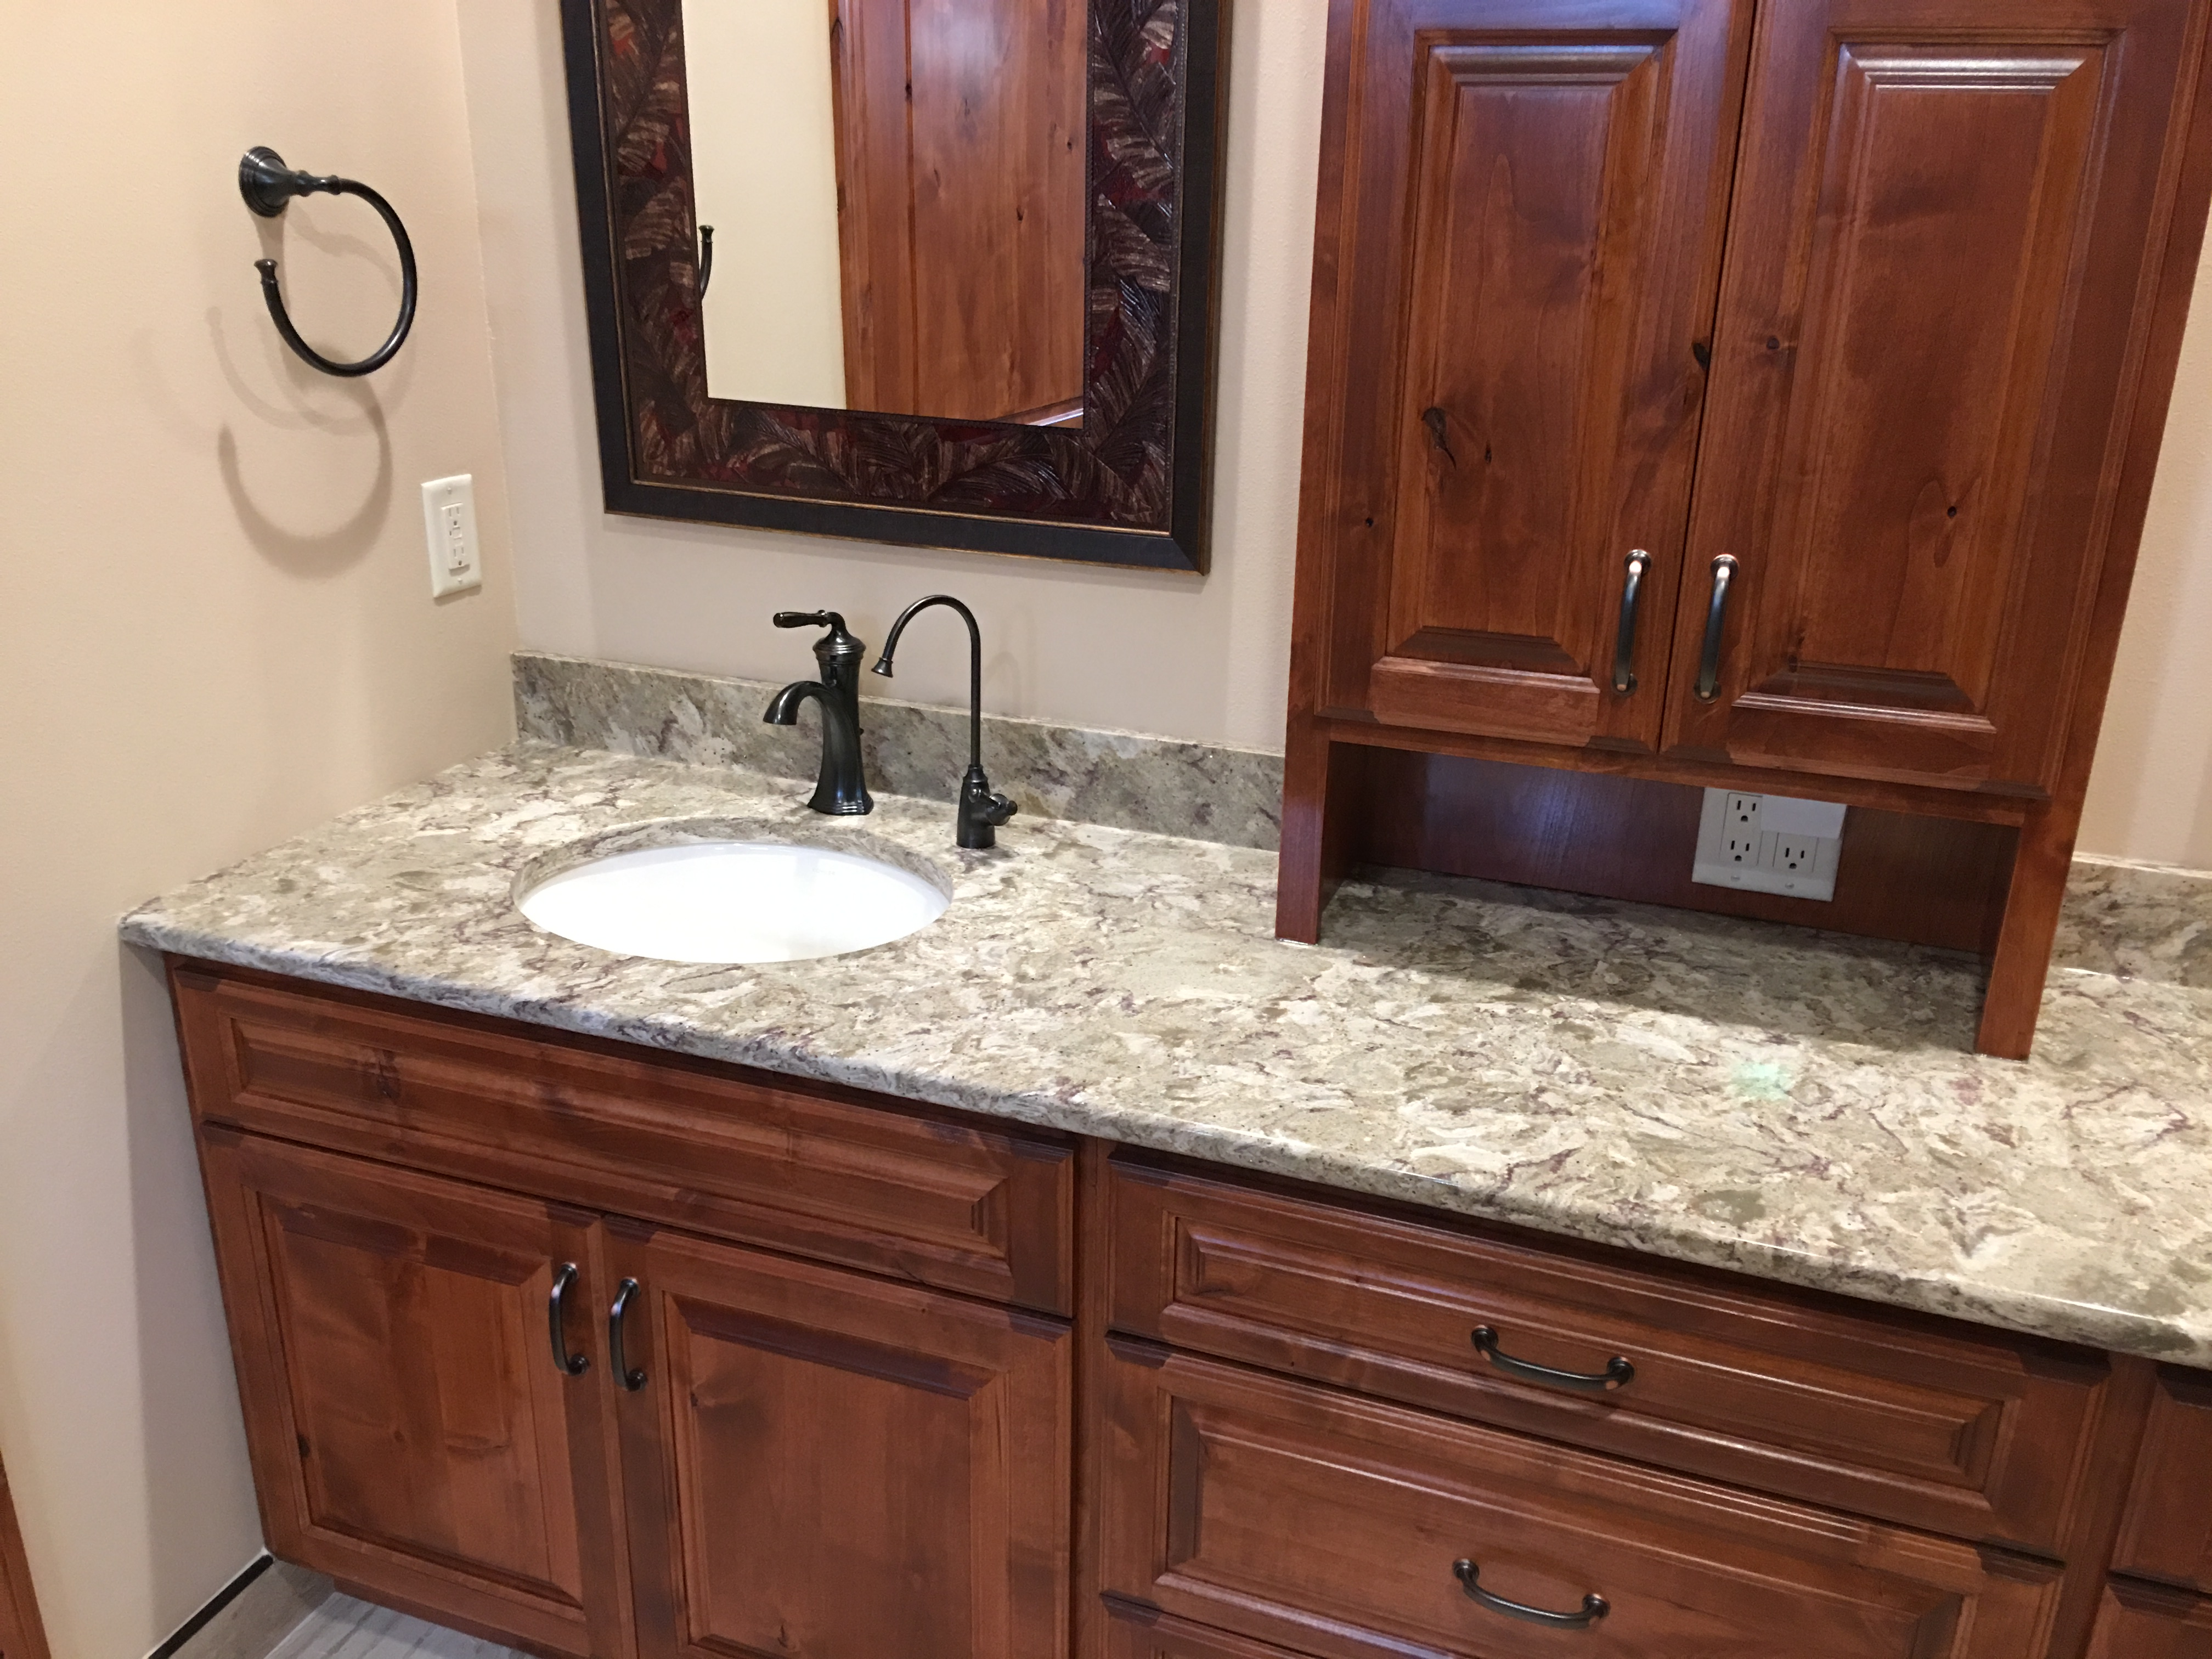 quartz pin images com countertops vs granite internet counter countertop priced homes bargain on pinned tops foreclosurestogo the for authority